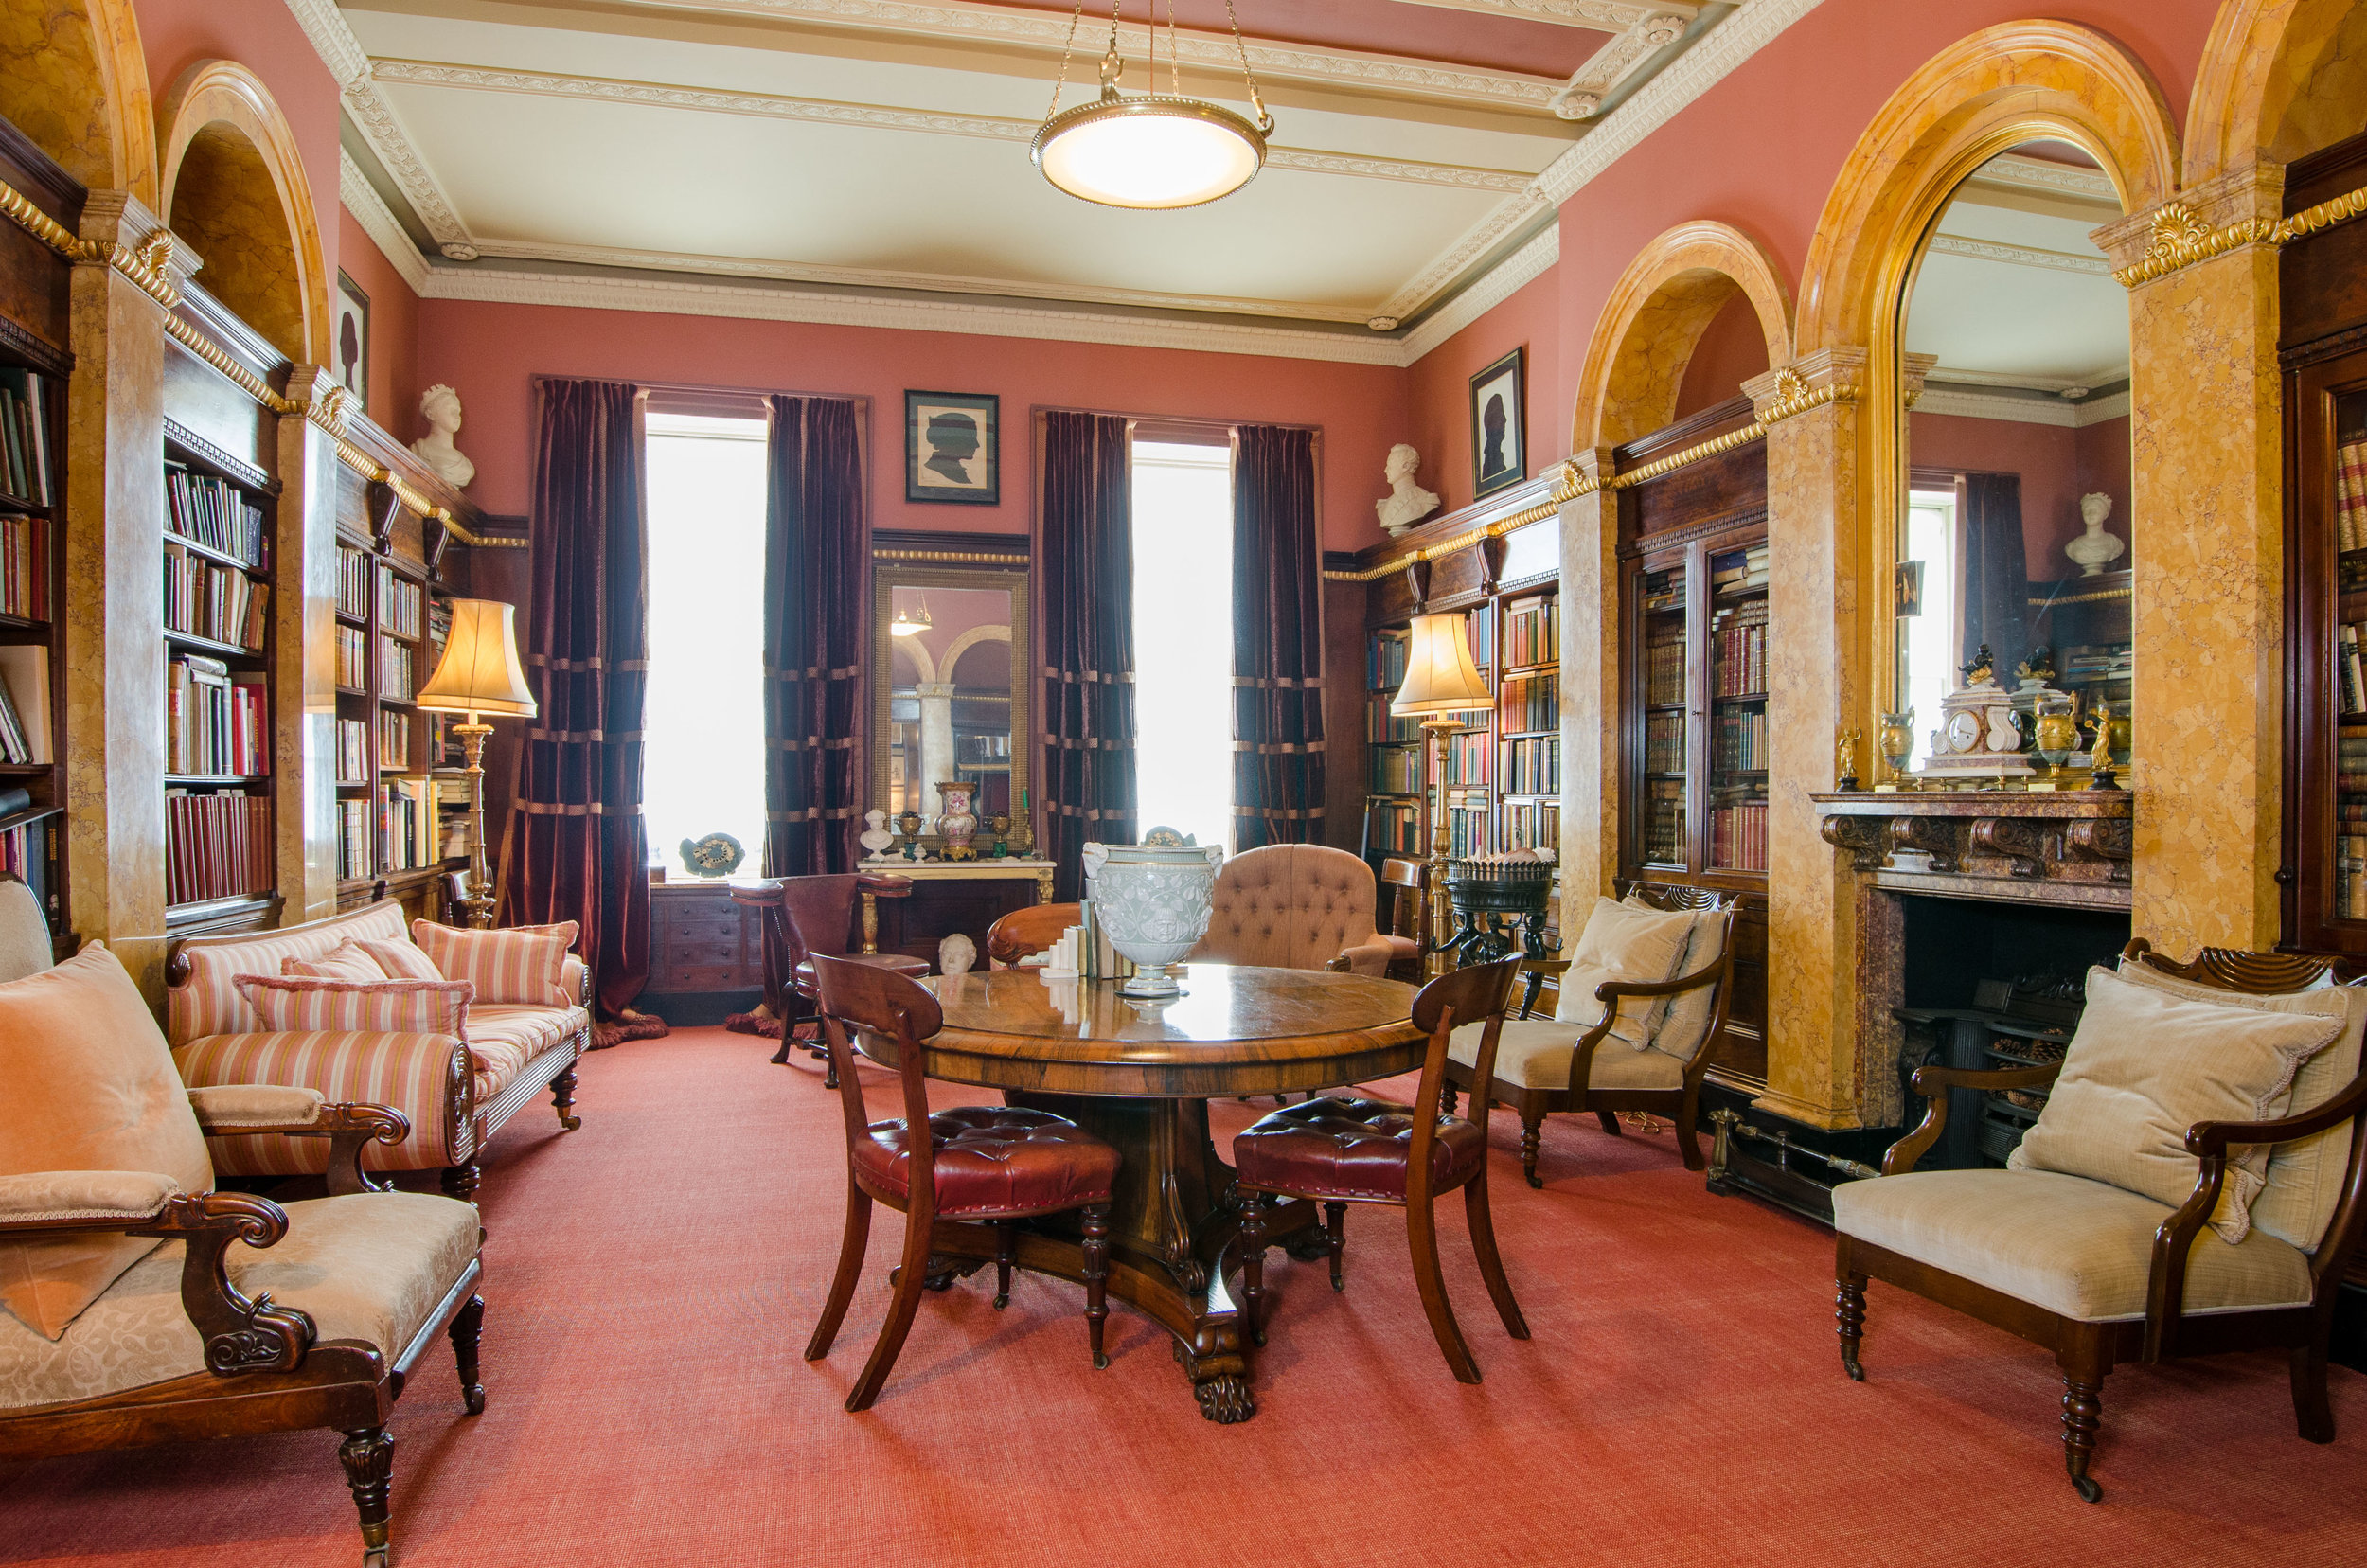 The library at 19, Lansdown Crescent, Bath, formerly the property of William Beckford; contents valued & sold at auction by Aldridges of Bath